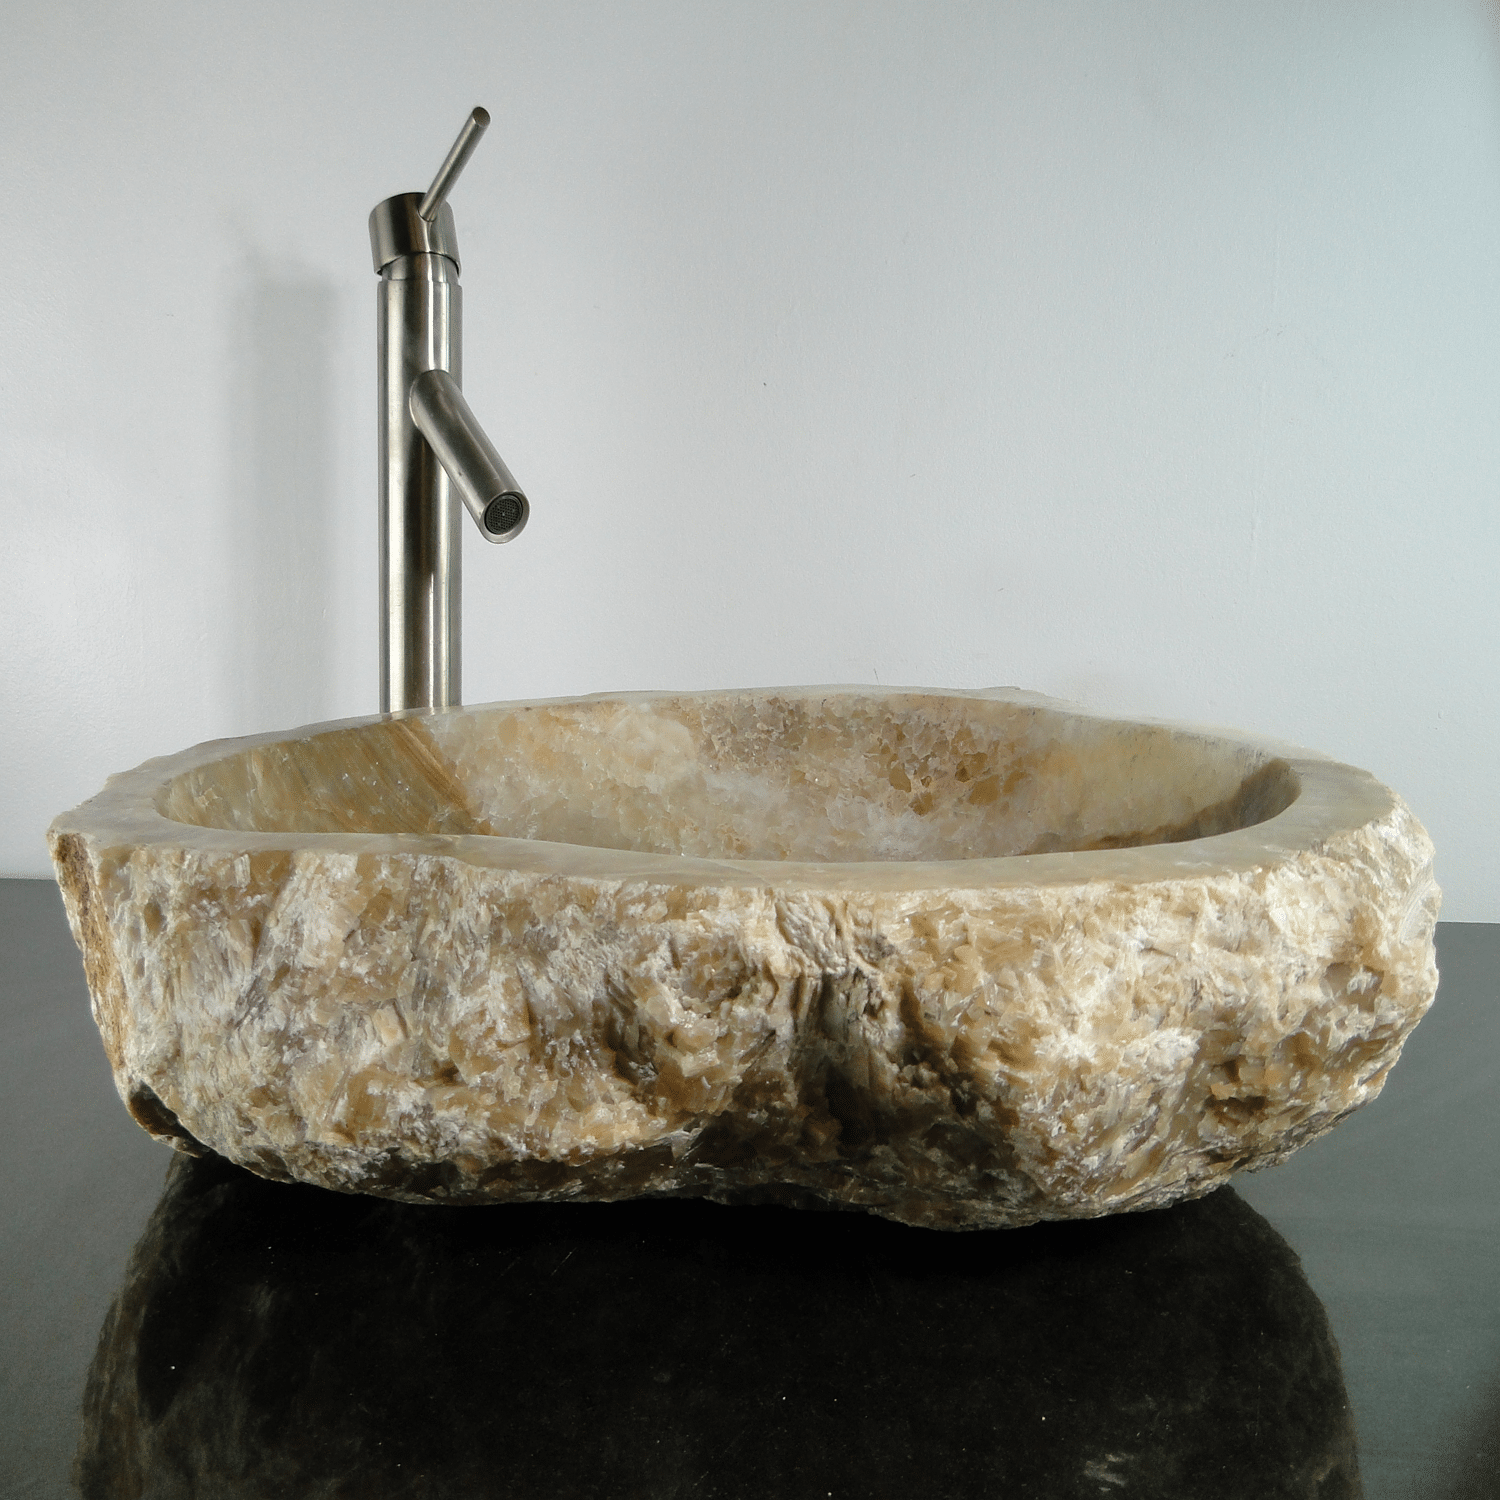 Marble Basin Onyx Marble Counter Top Vessel Basin Sink Onx82